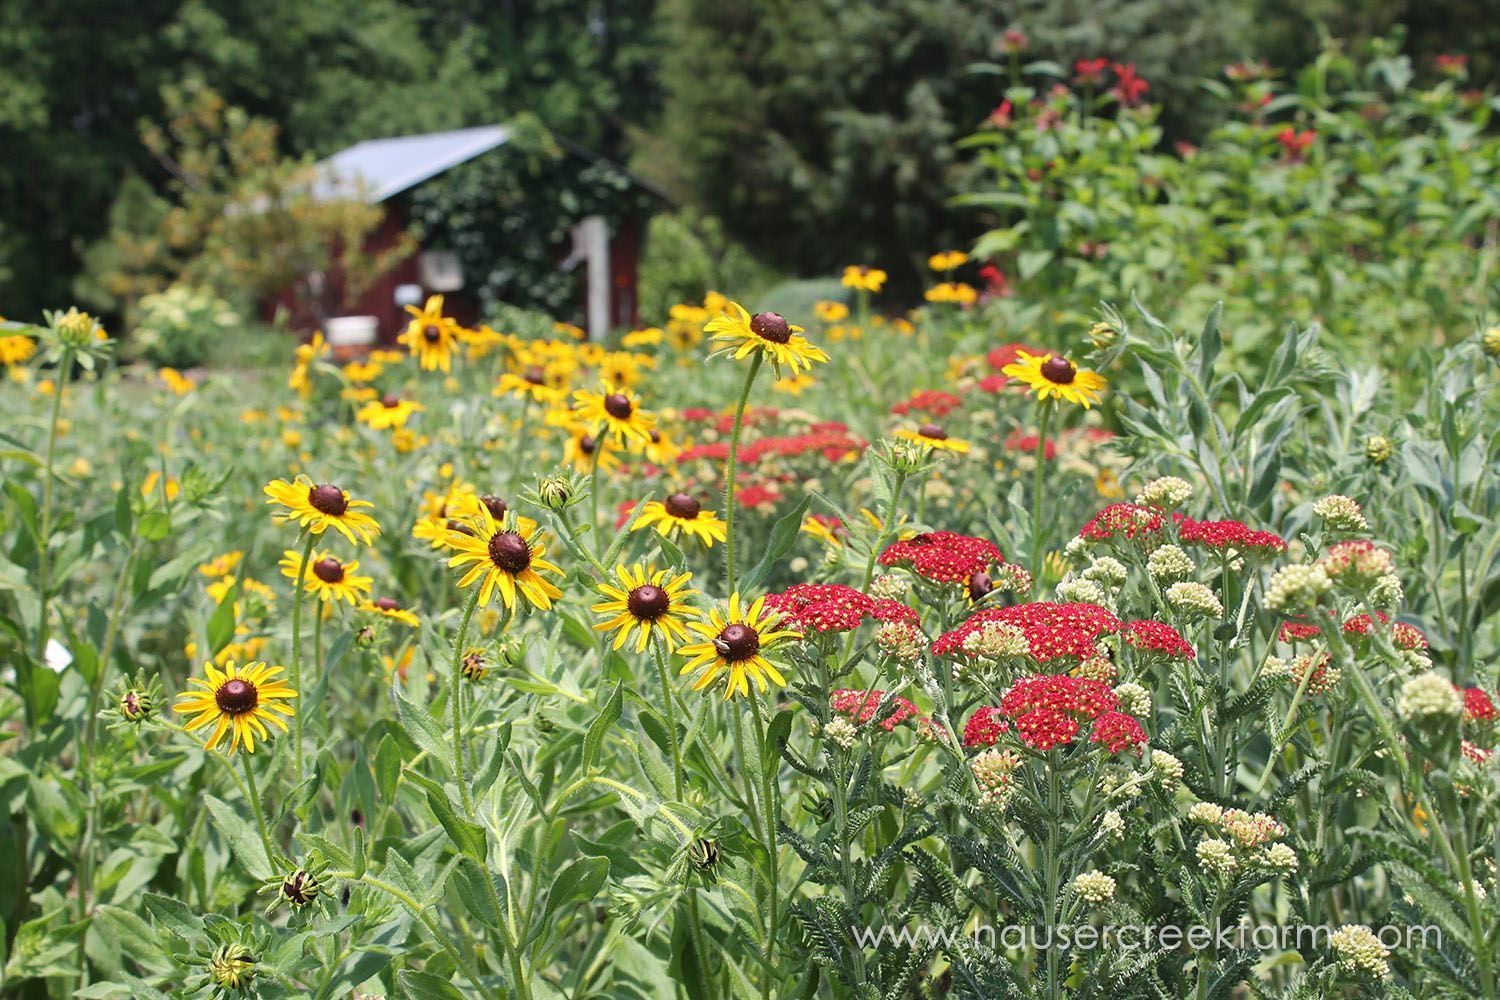 red-building-black-eyed-susans-yarrow-hauser-creek-farm-IMG_1548.jpg